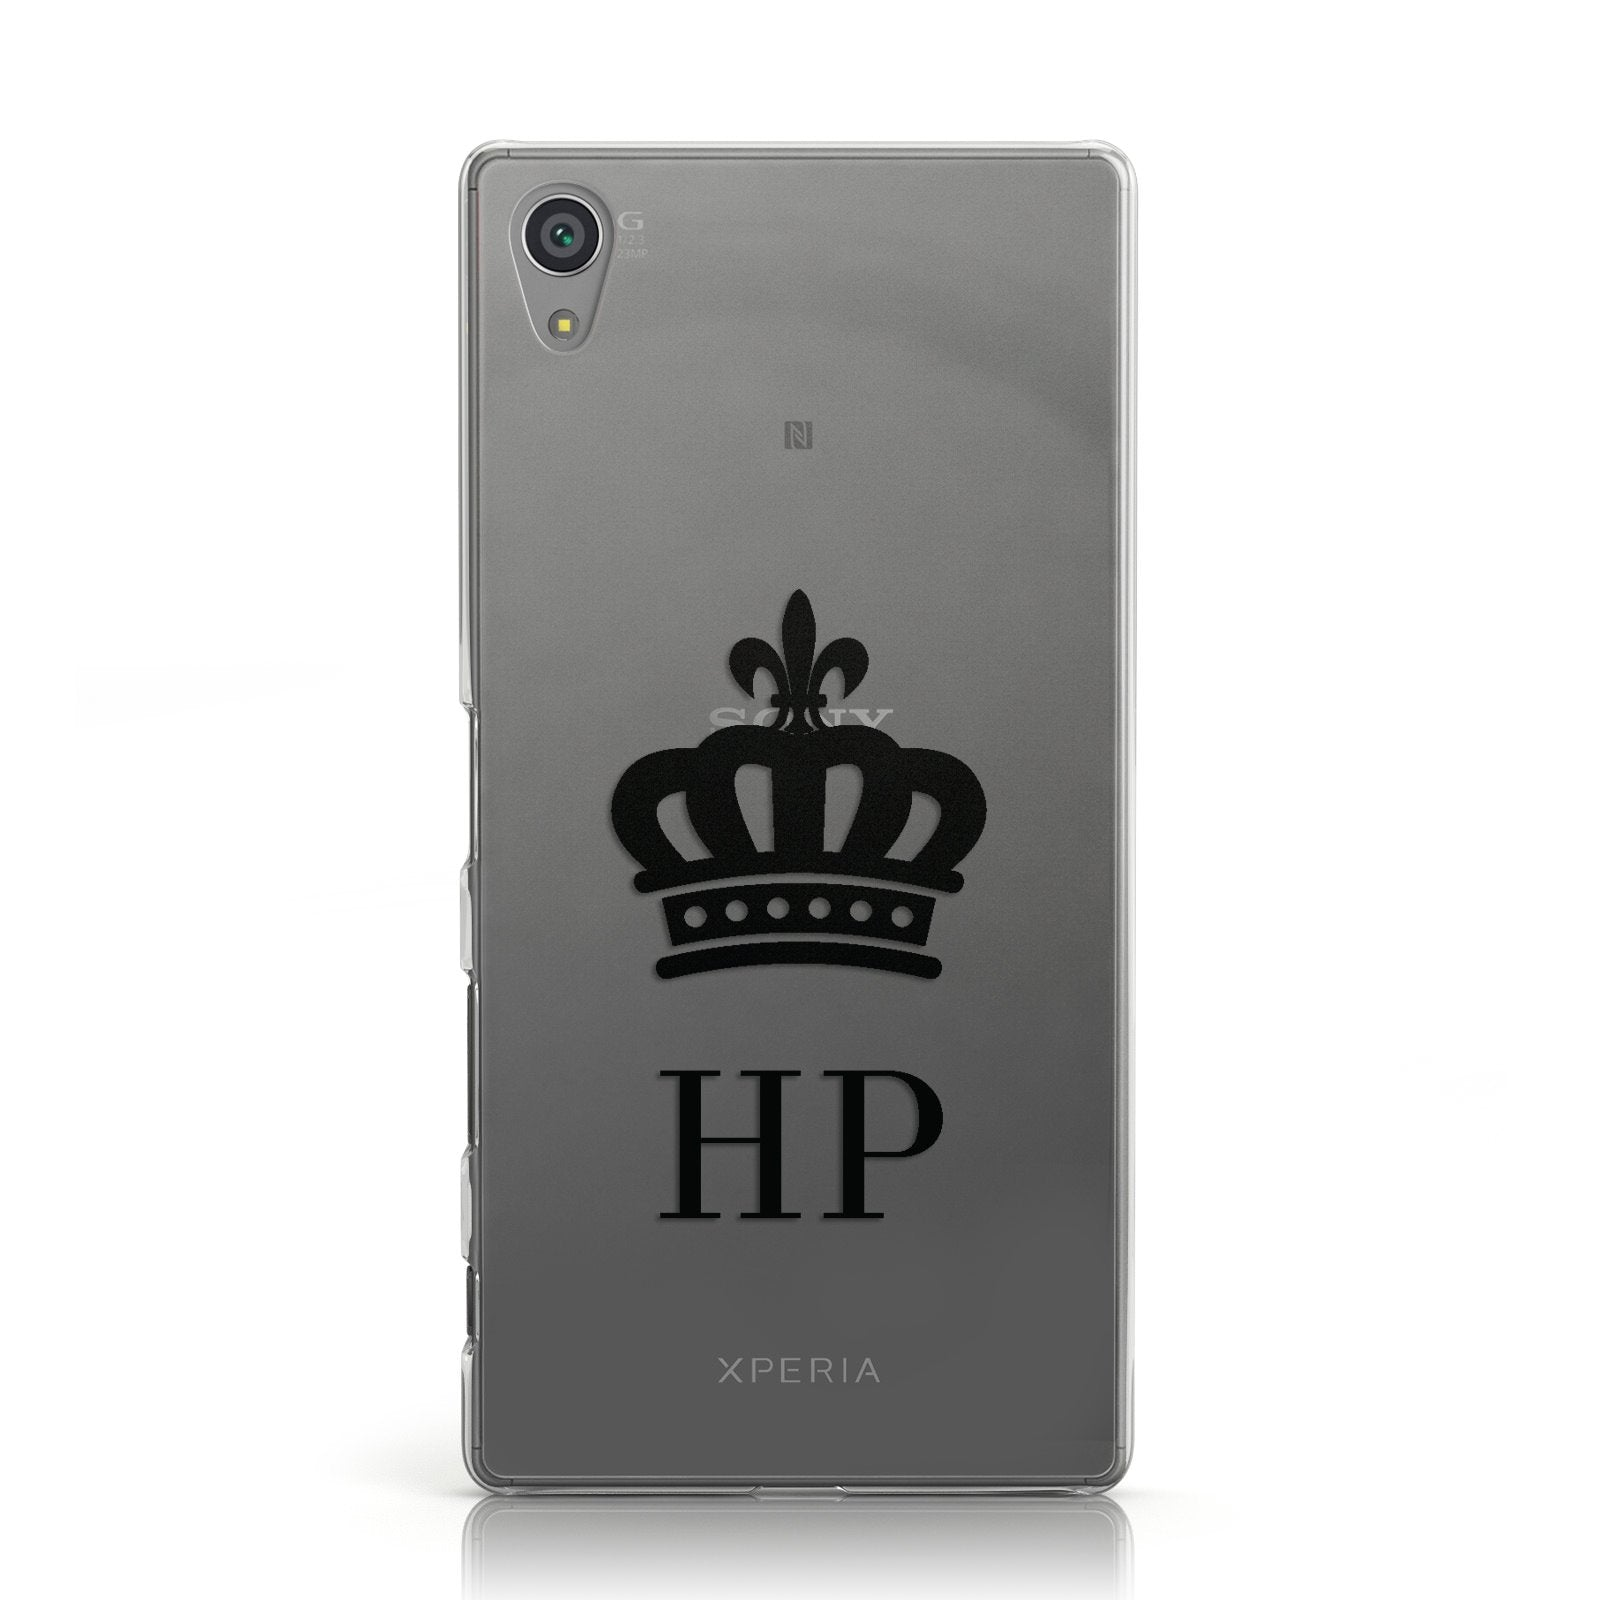 Personalised Black Crown & Initials Clear Sony Xperia Case